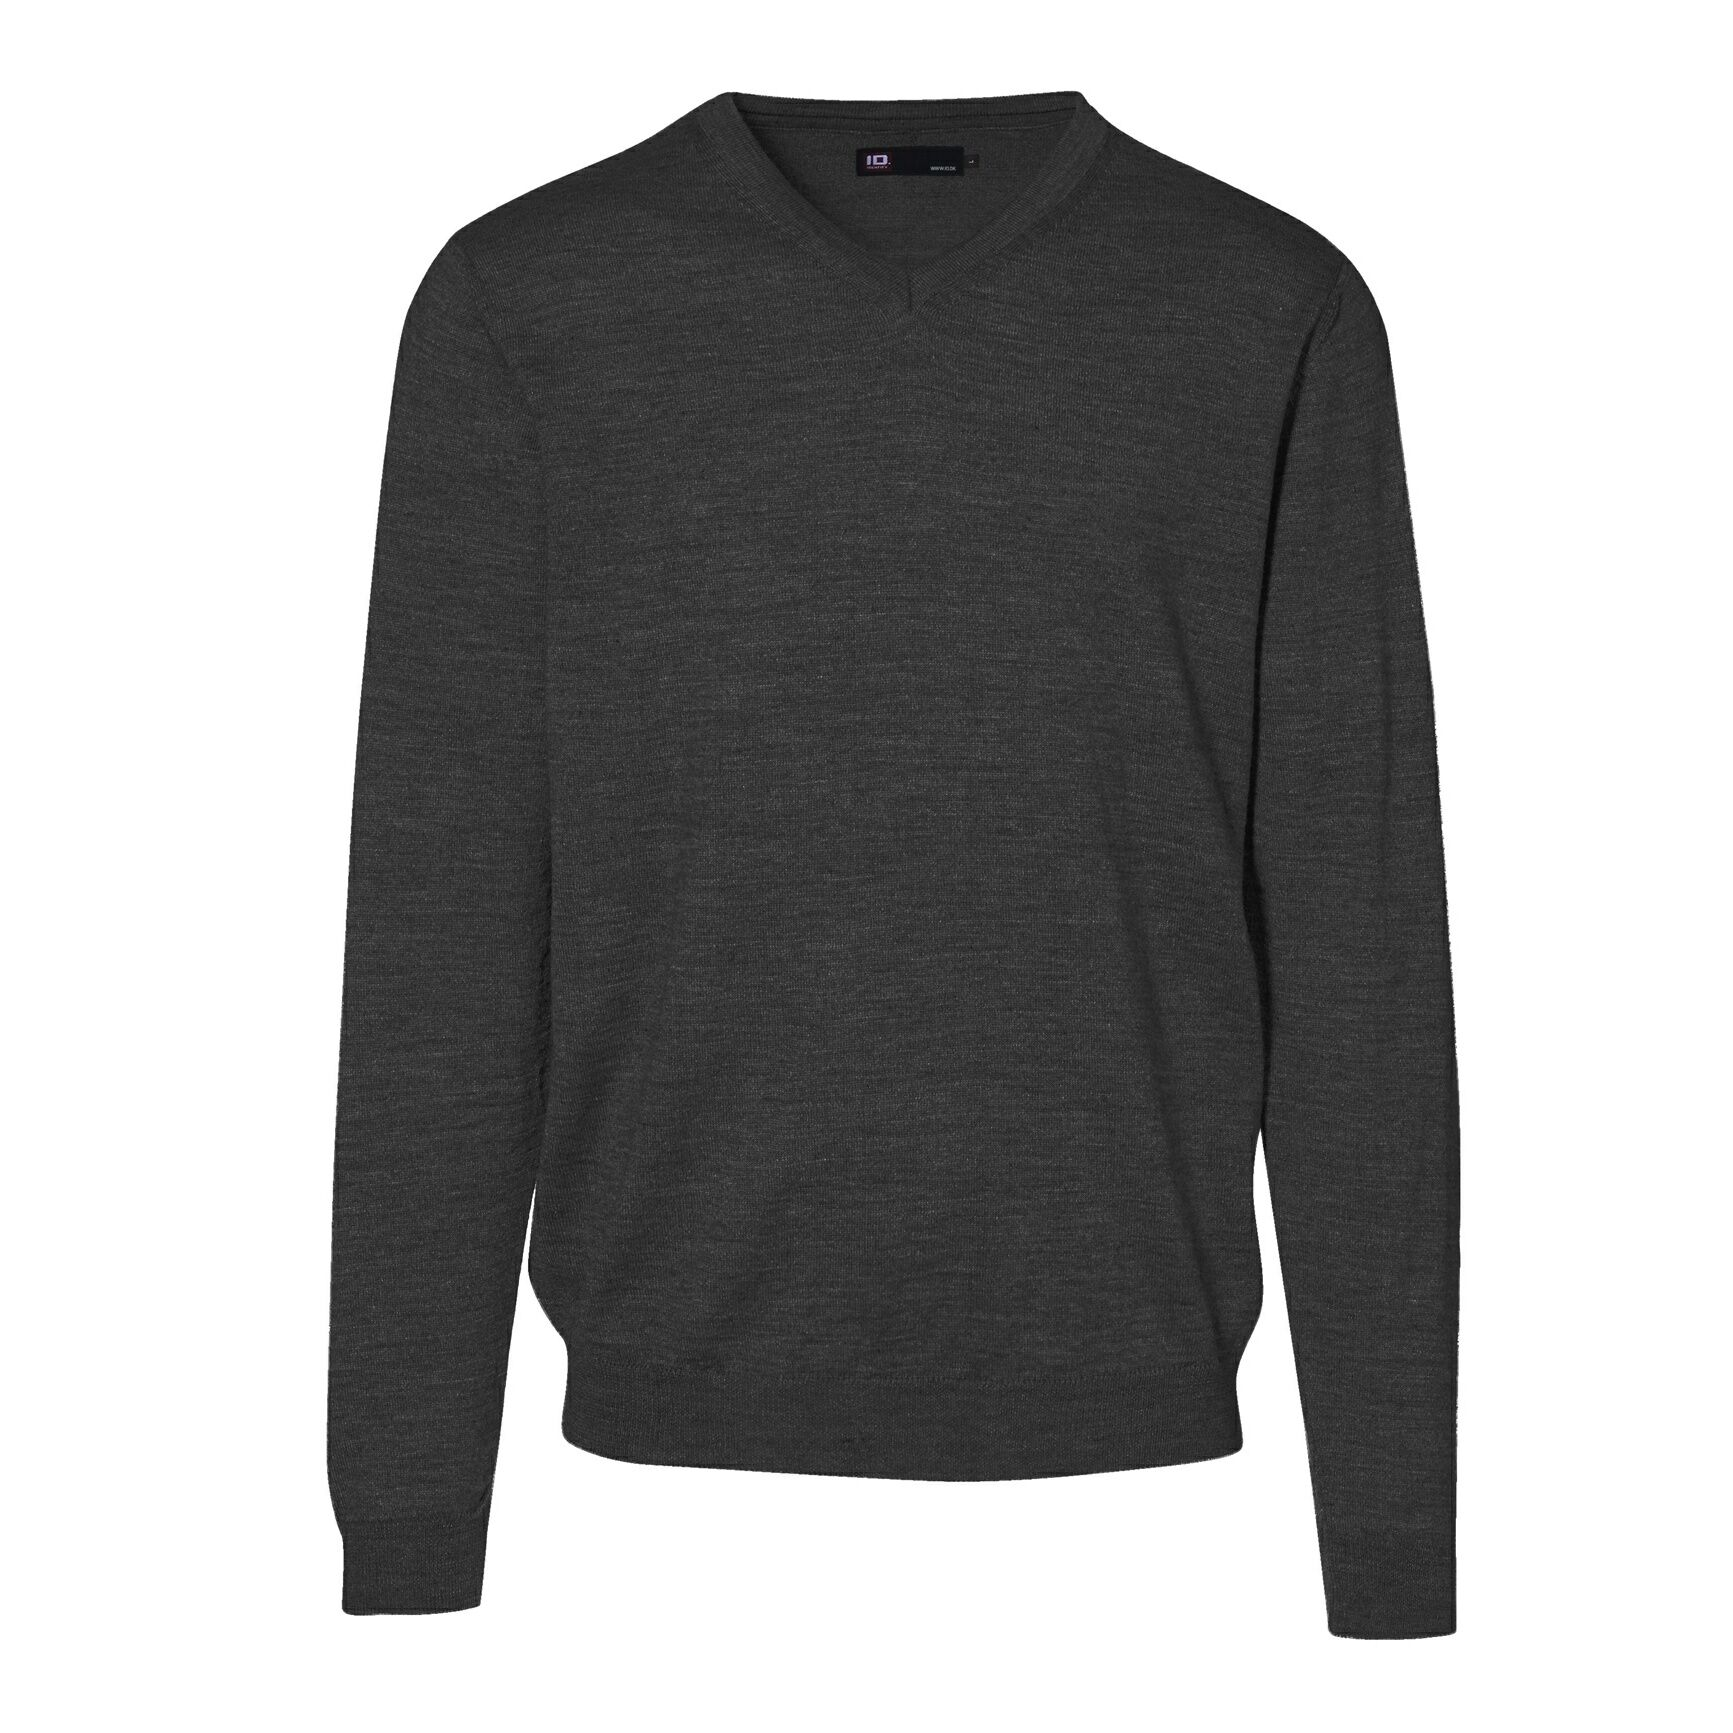 Id - Sweat-Shirt/Pull Col V - Homme (Gris sombre) - UTID392